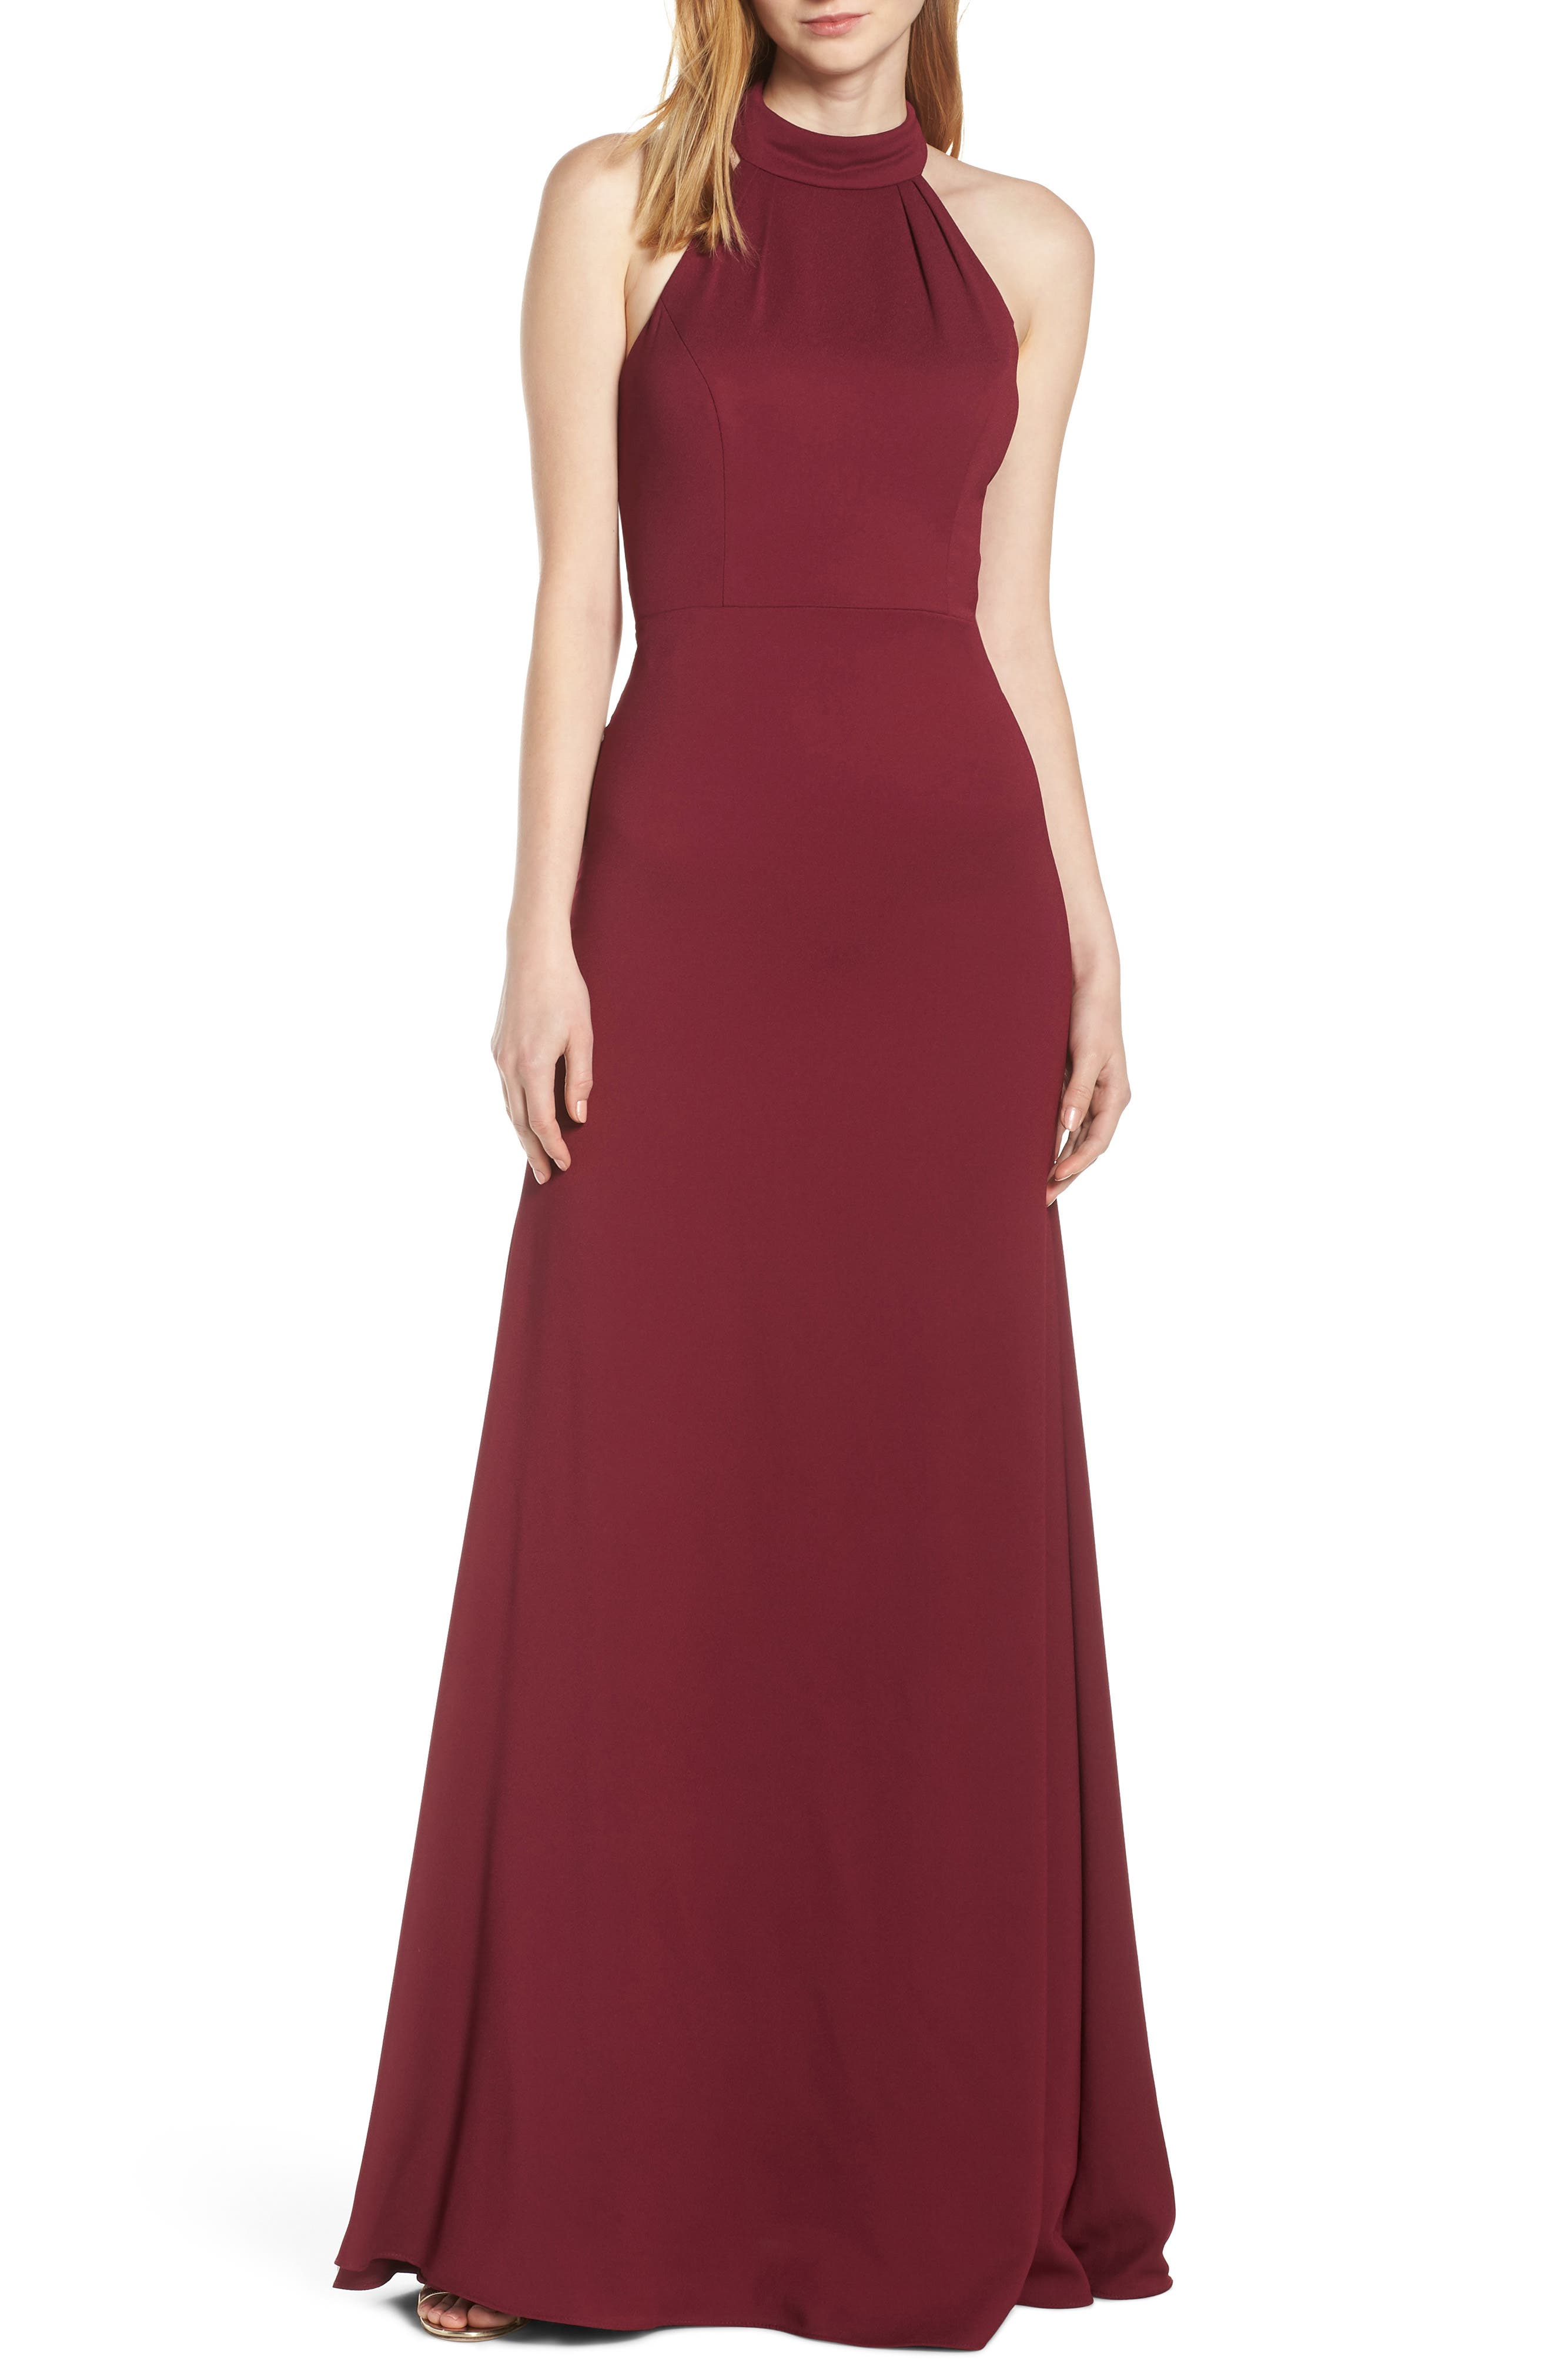 Hayley Paige Occasions Mock Neck Strappy Back Crepe Evening Dress, Burgundy